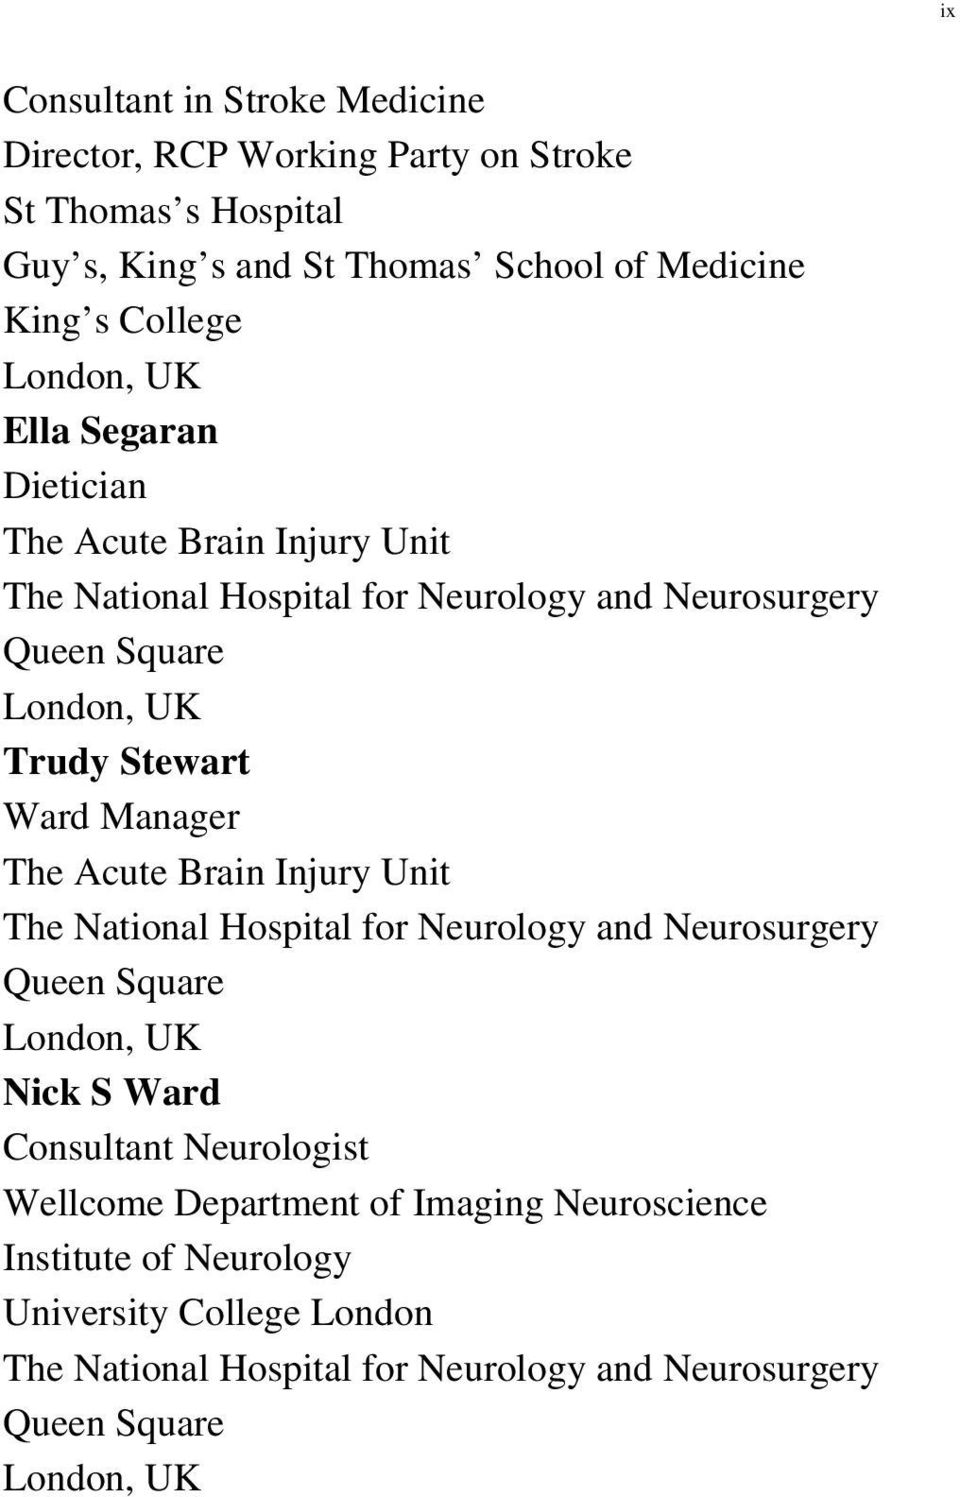 Manager The Acute Brain Injury Unit The National Hospital for Neurology and Neurosurgery Queen Square London, UK Nick S Ward Consultant Neurologist Wellcome